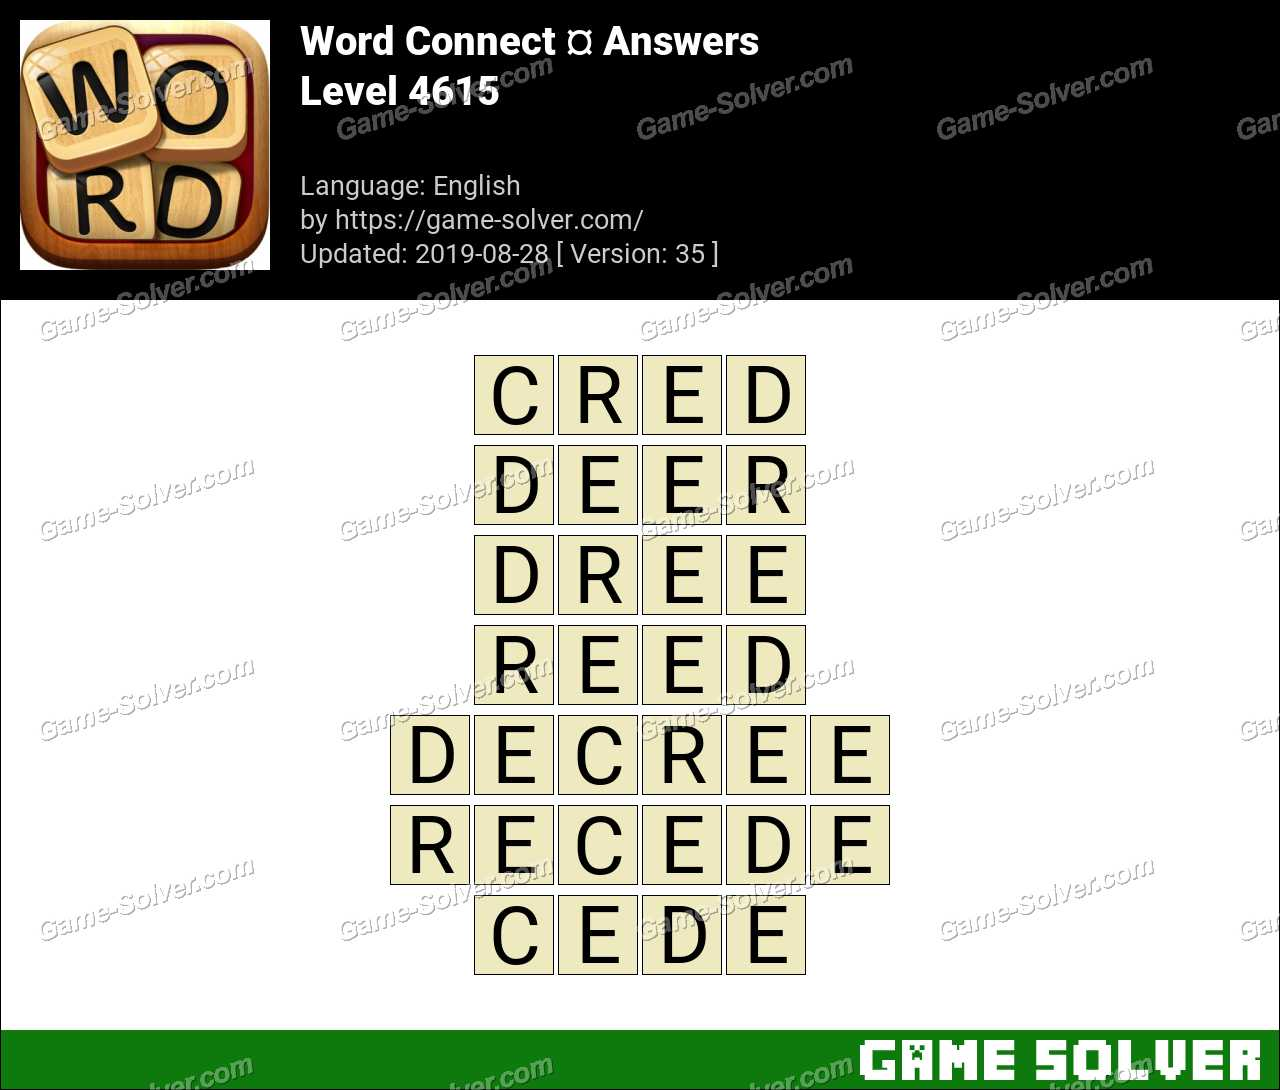 Word Connect Level 4615 Answers